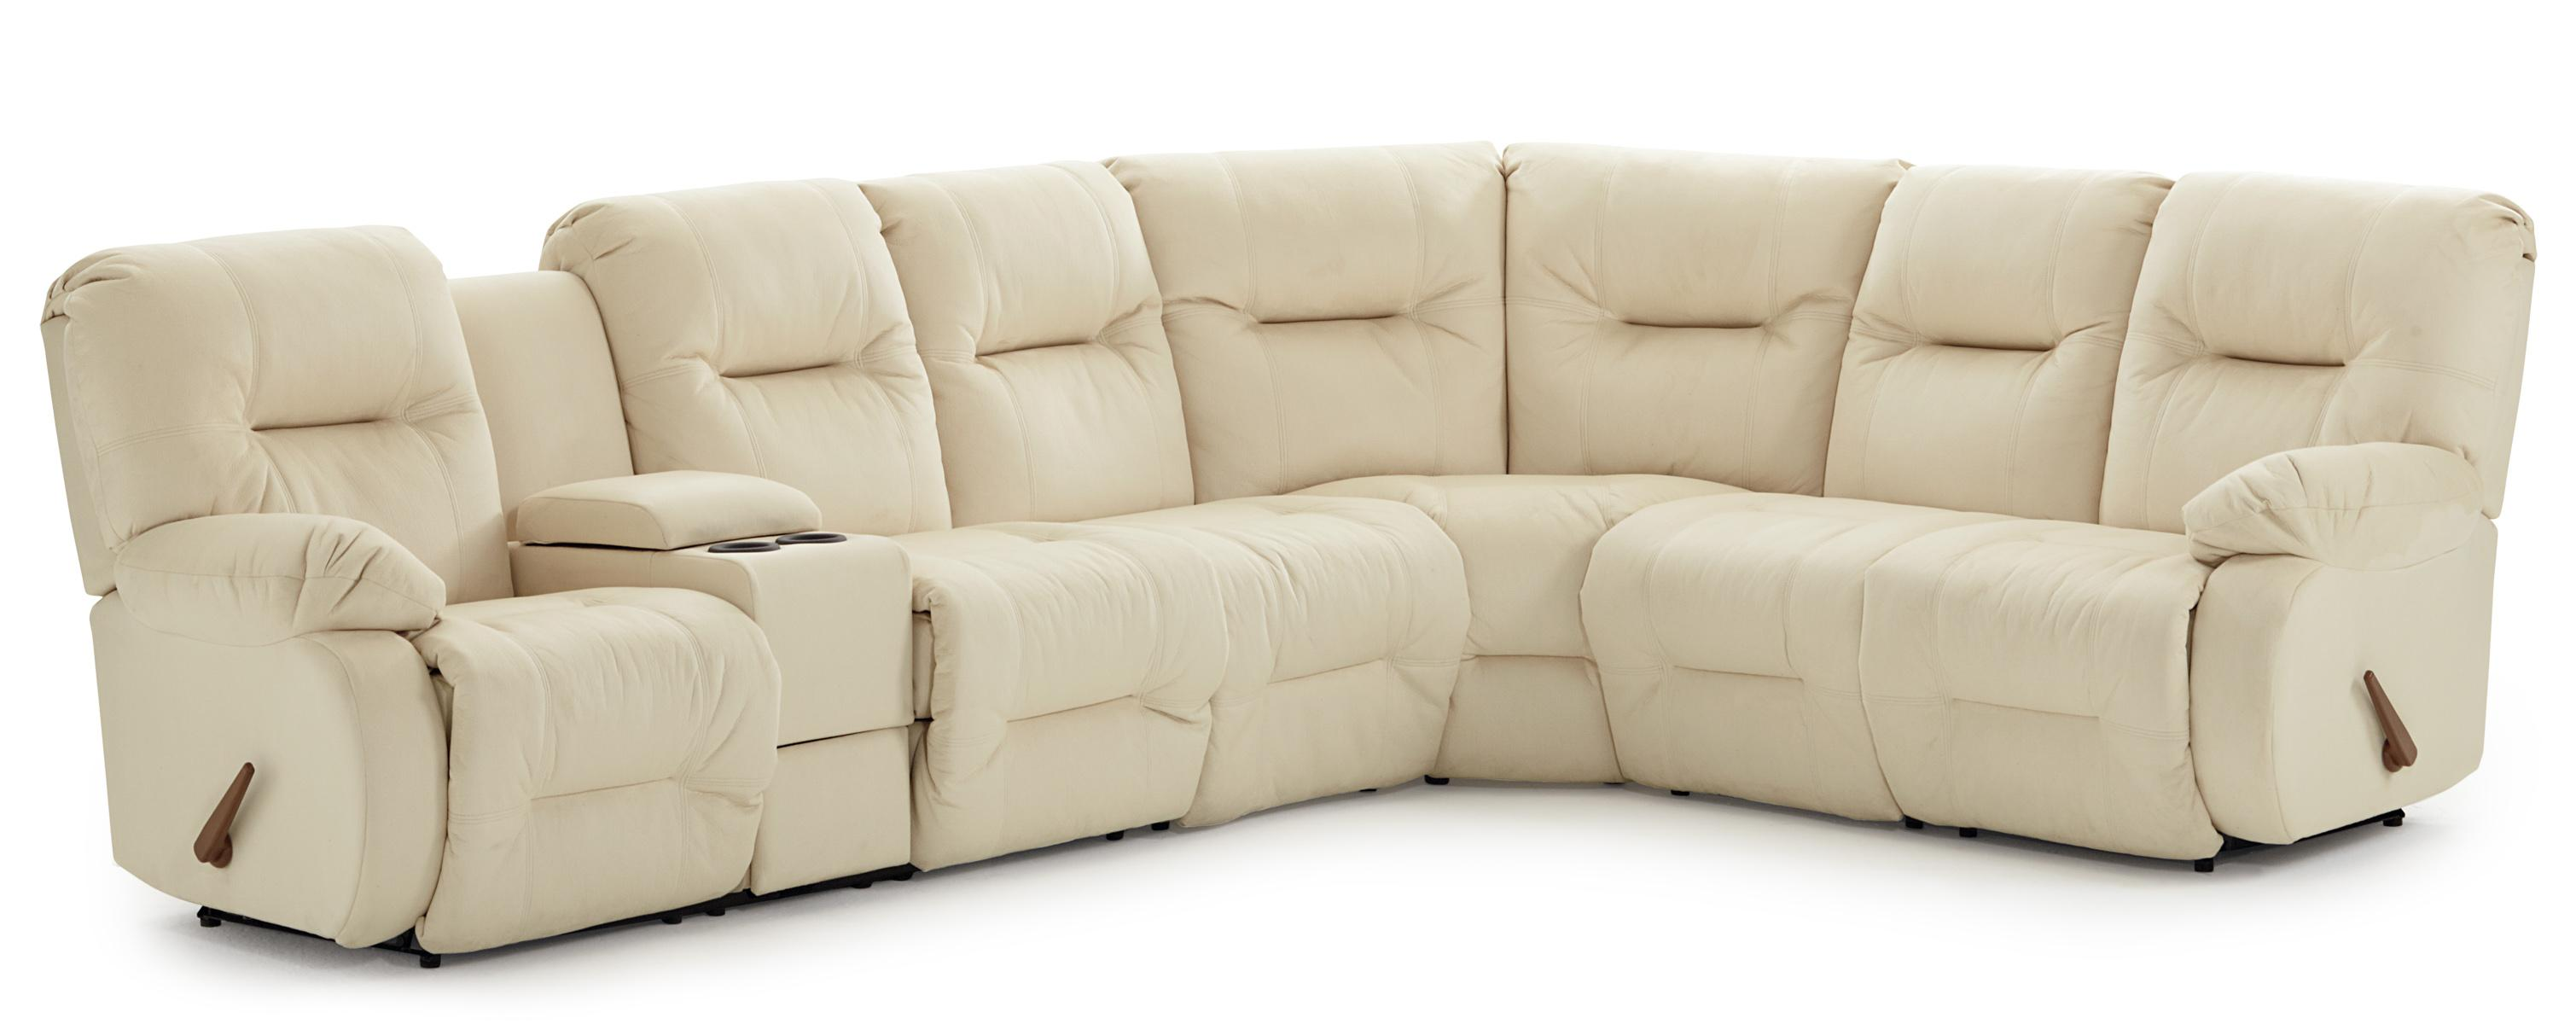 Casual reclining sectional sofa with storage console and cupholders by best home furnishings Storage loveseat